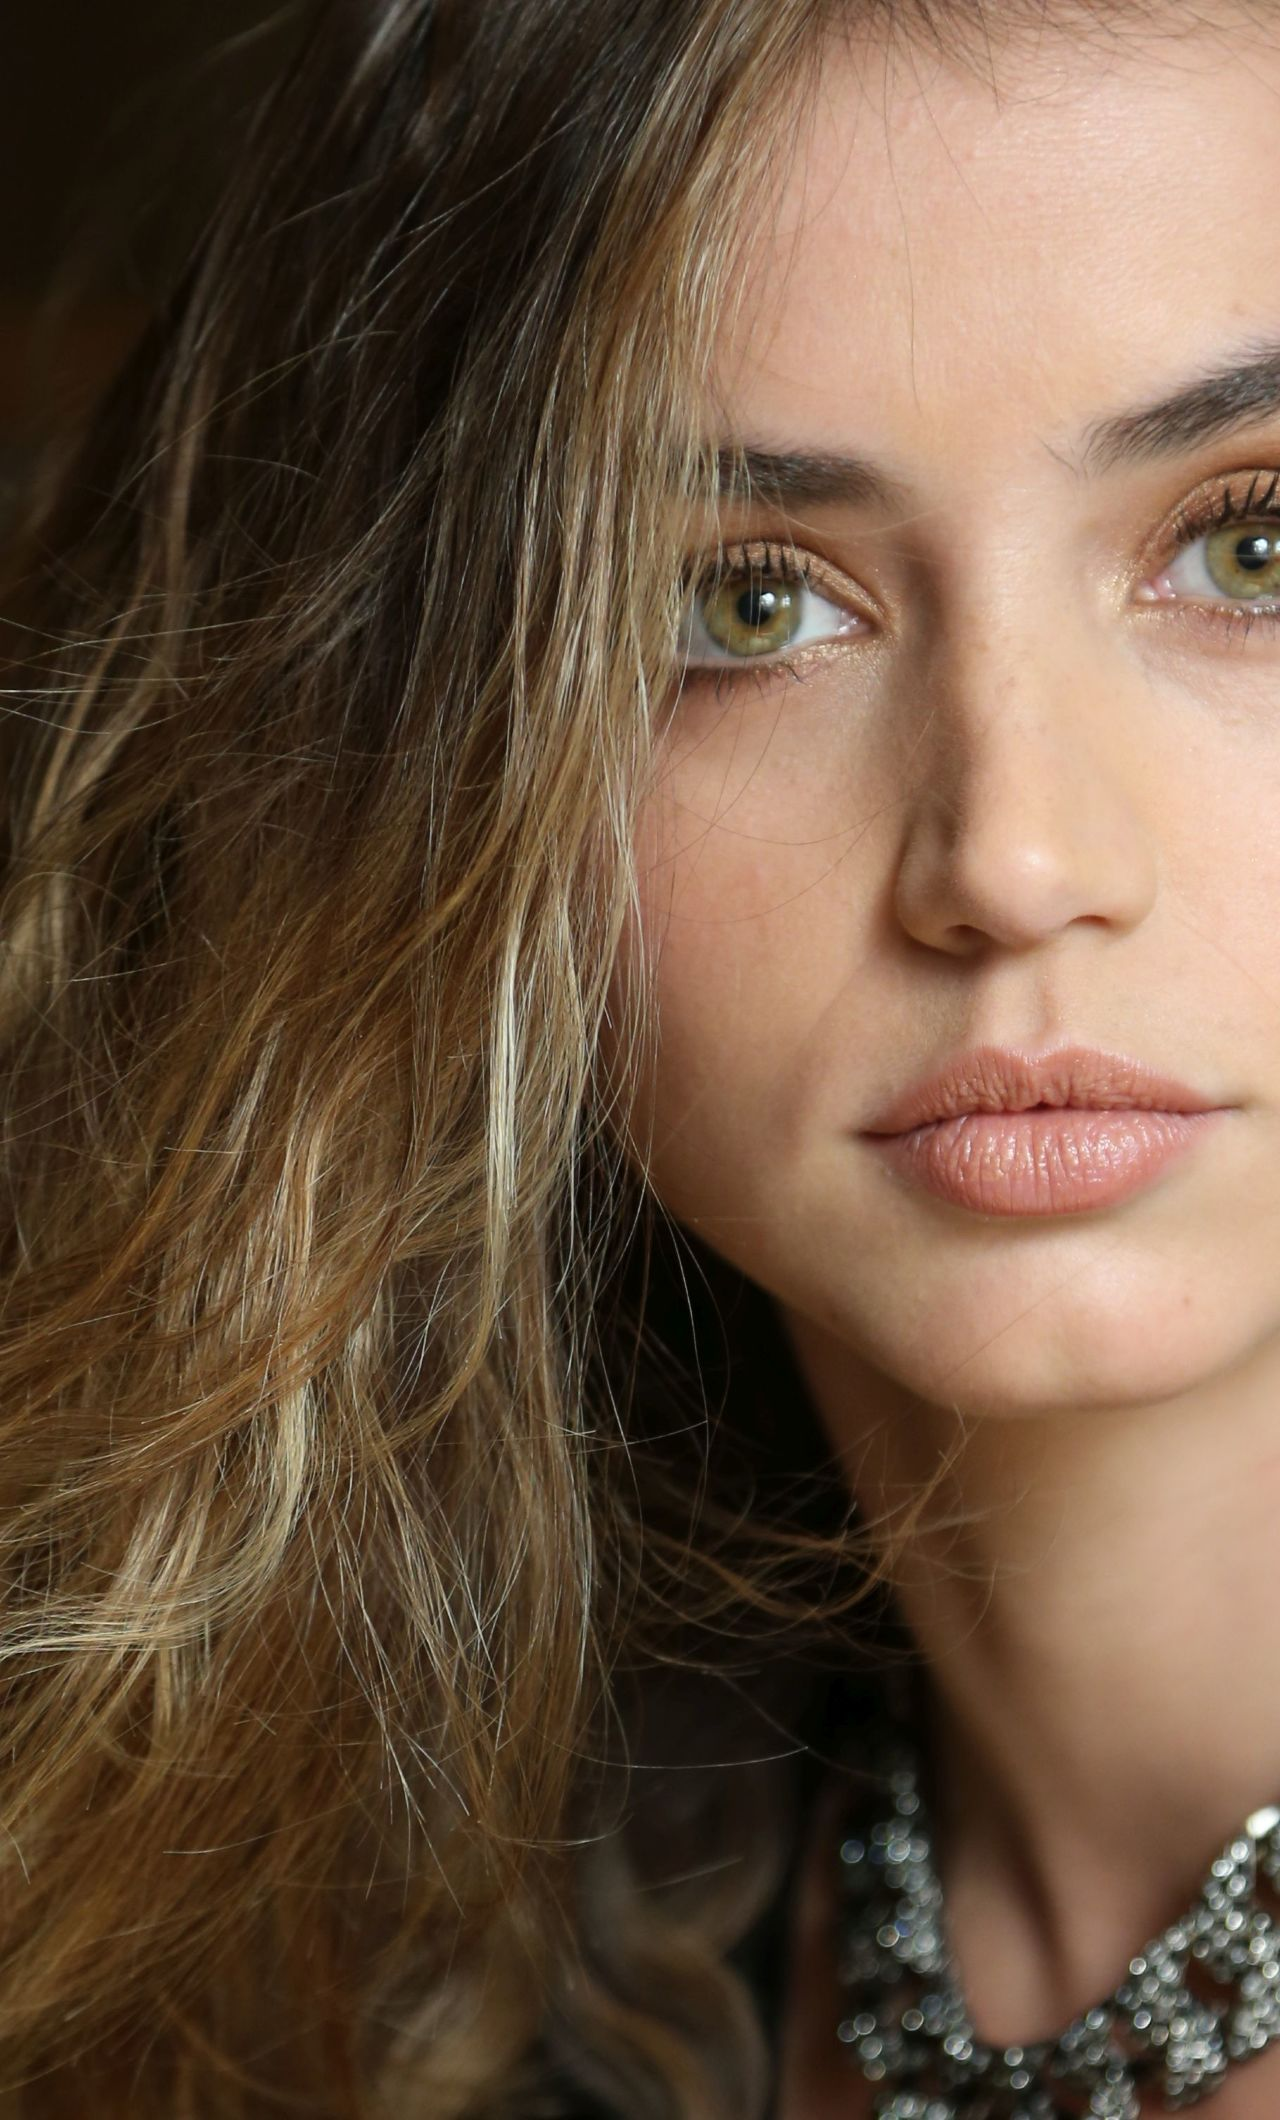 Ana De Armas Wallpapers Top Free Ana De Armas Backgrounds Wallpaperaccess